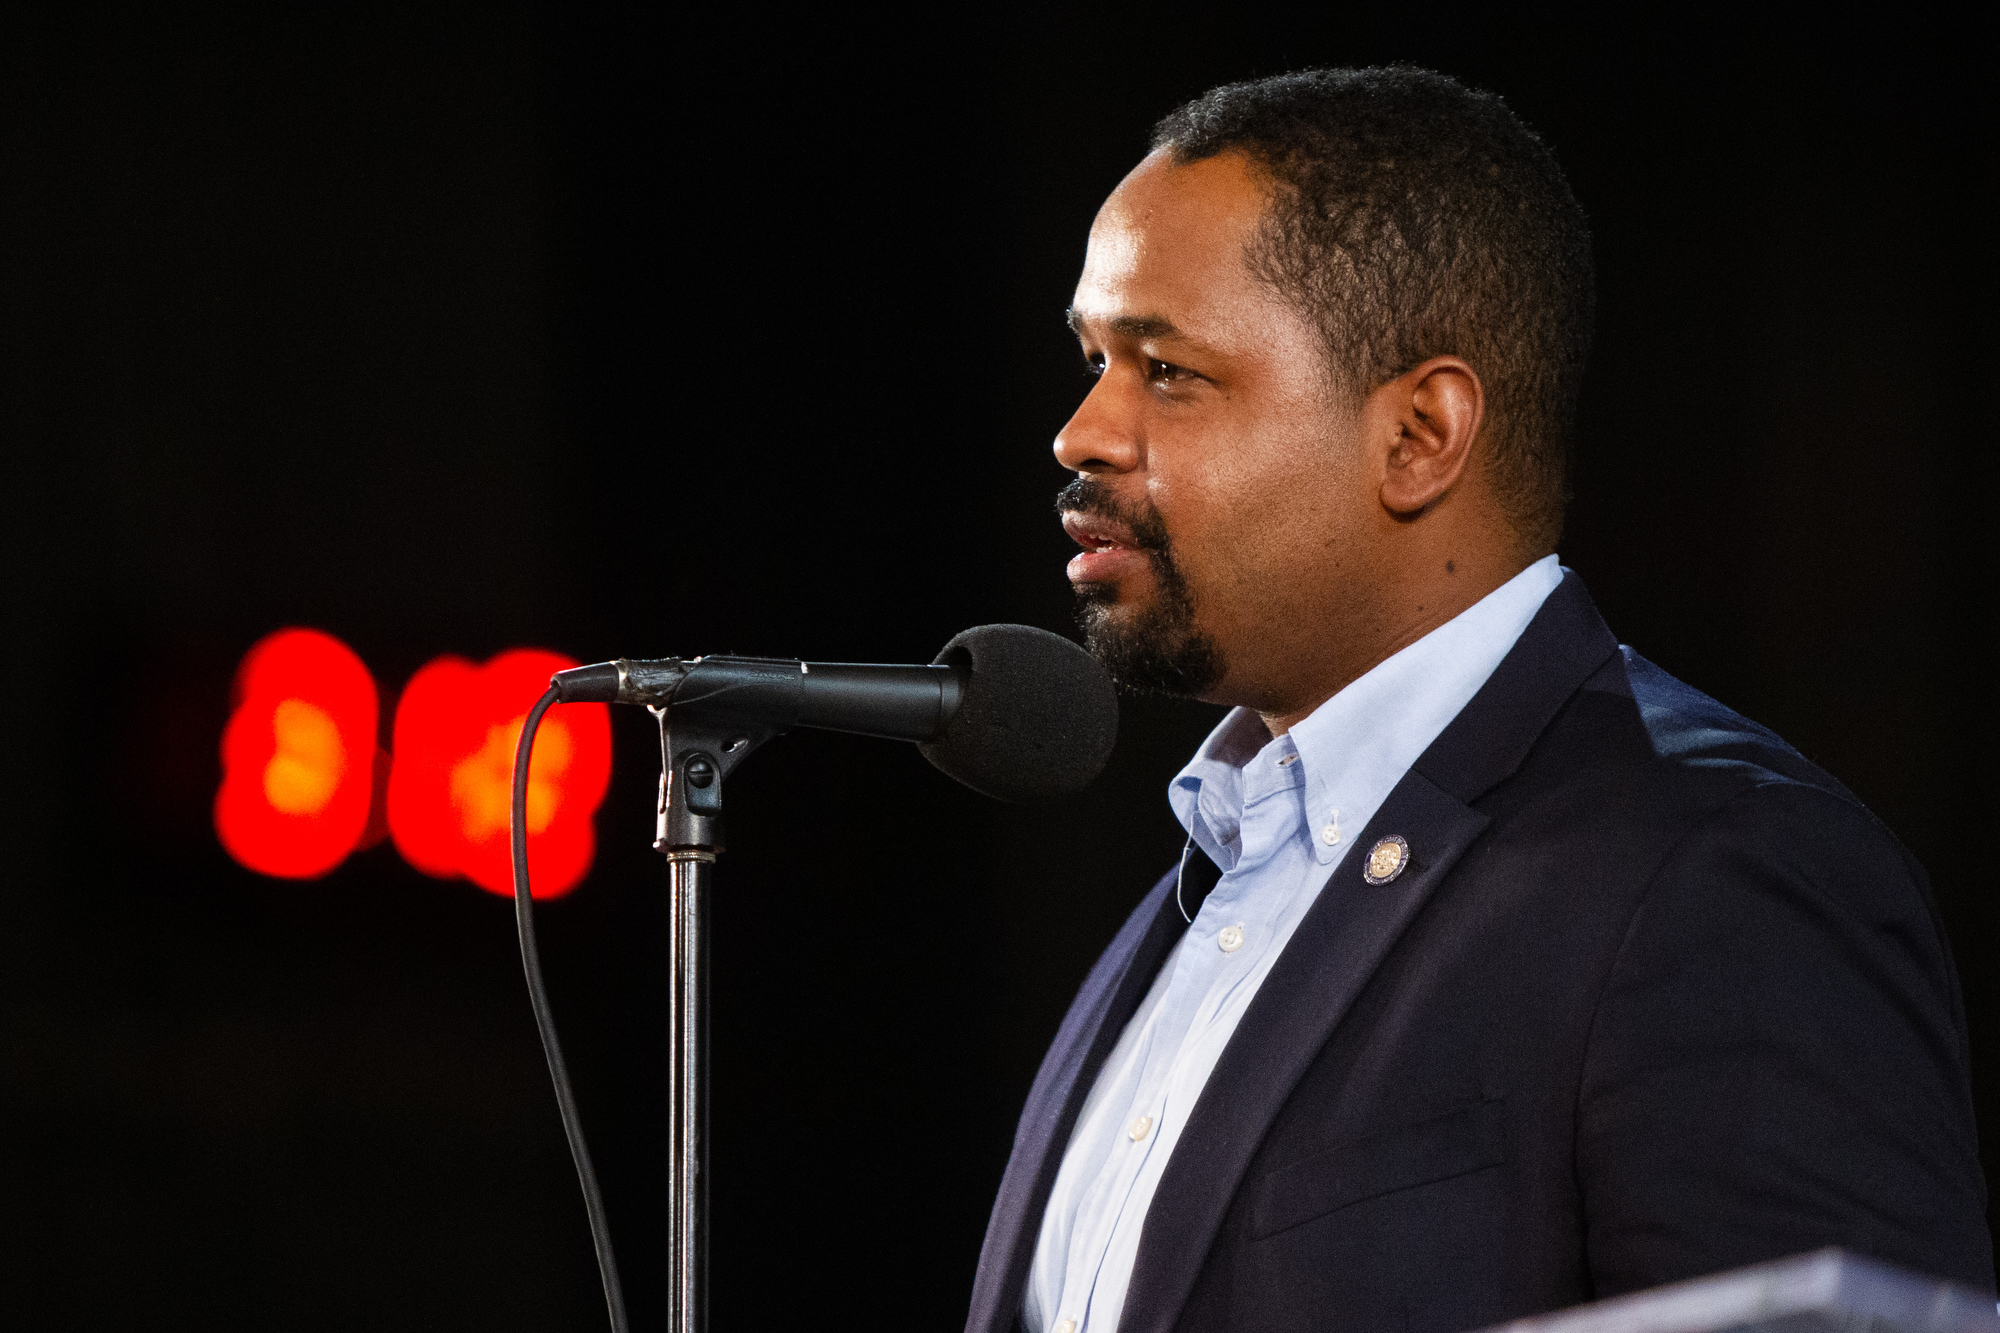 July 14, 2019 − Sen. Sharif Street hosts a Violence Prevention Forum in response to the recent increase in gun violence across Philadelphia.